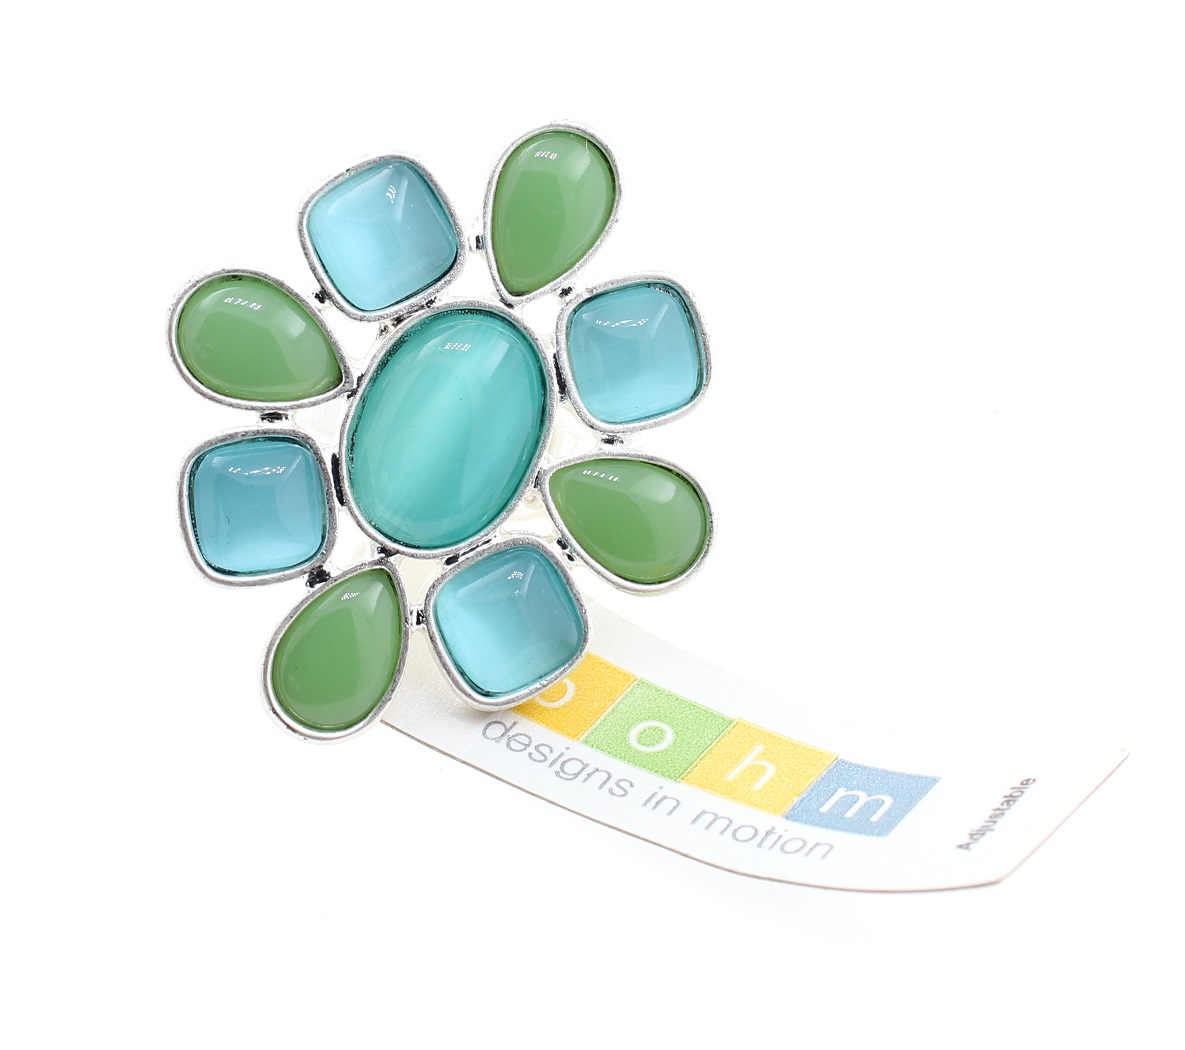 BOHM - Glass Petals Flower Ring - Adjustable Size - Oxidised Silver/Aqua BNWT